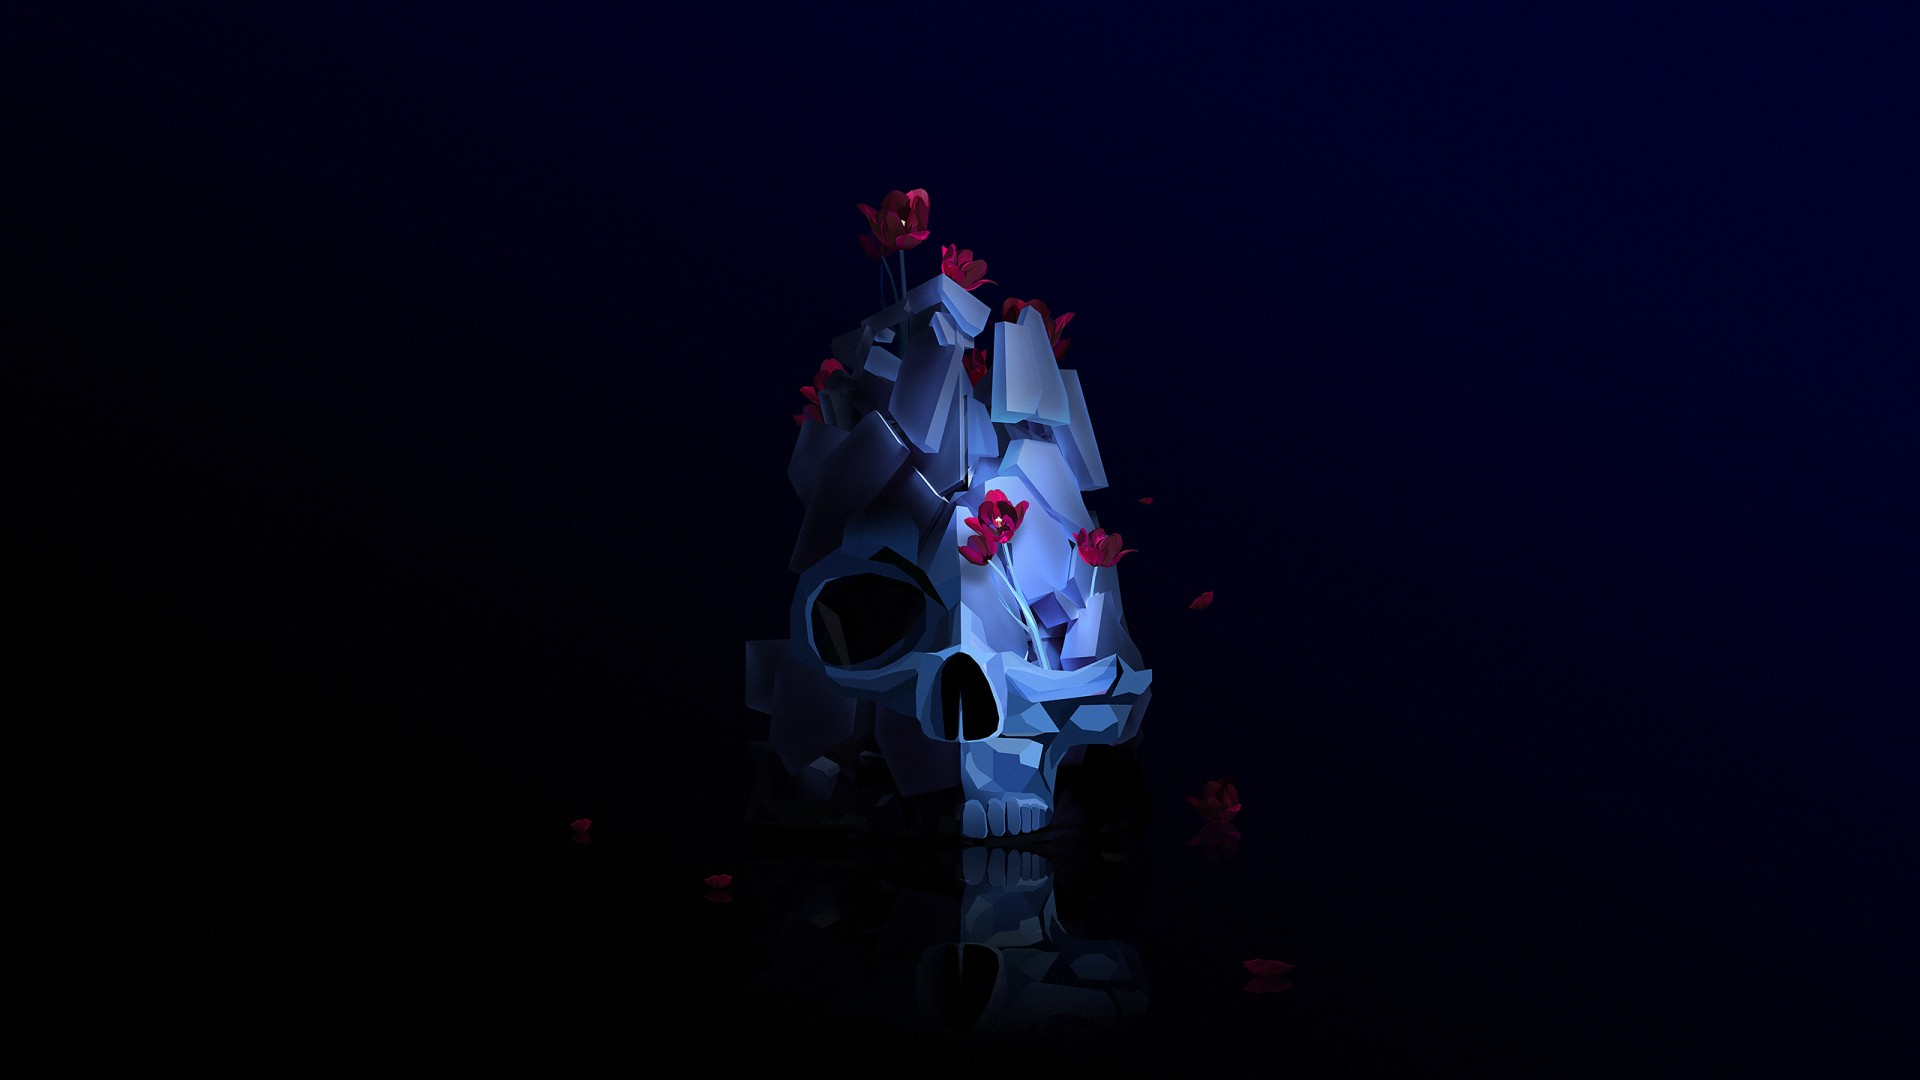 3d Windows Logo Wallpaper Skull Artwork Wallpapers Hd Wallpapers Id 23362